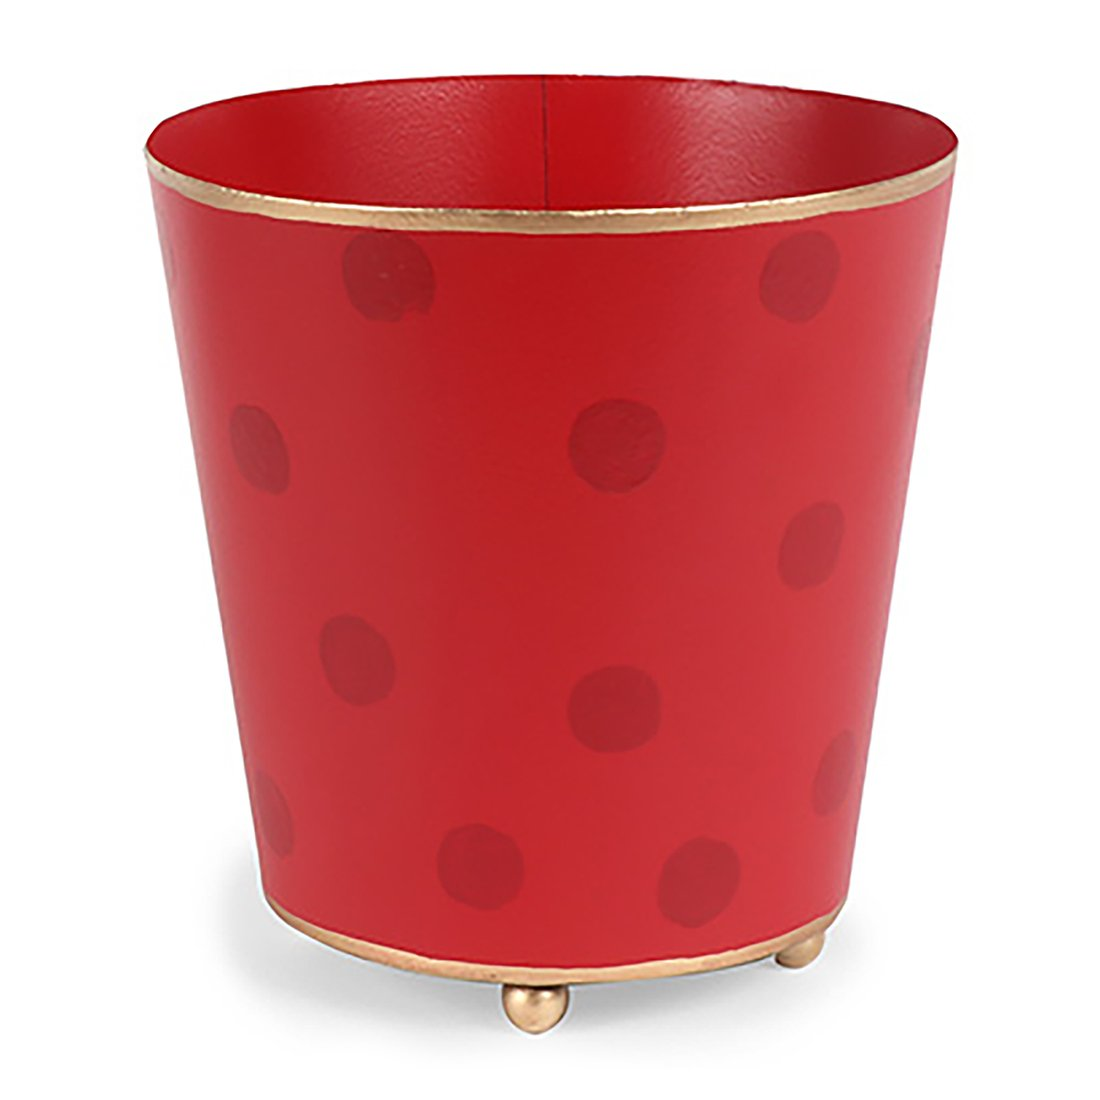 "Holiday Dots 6"" Round Cachepot Monogrammed - The Preppy Bunny"